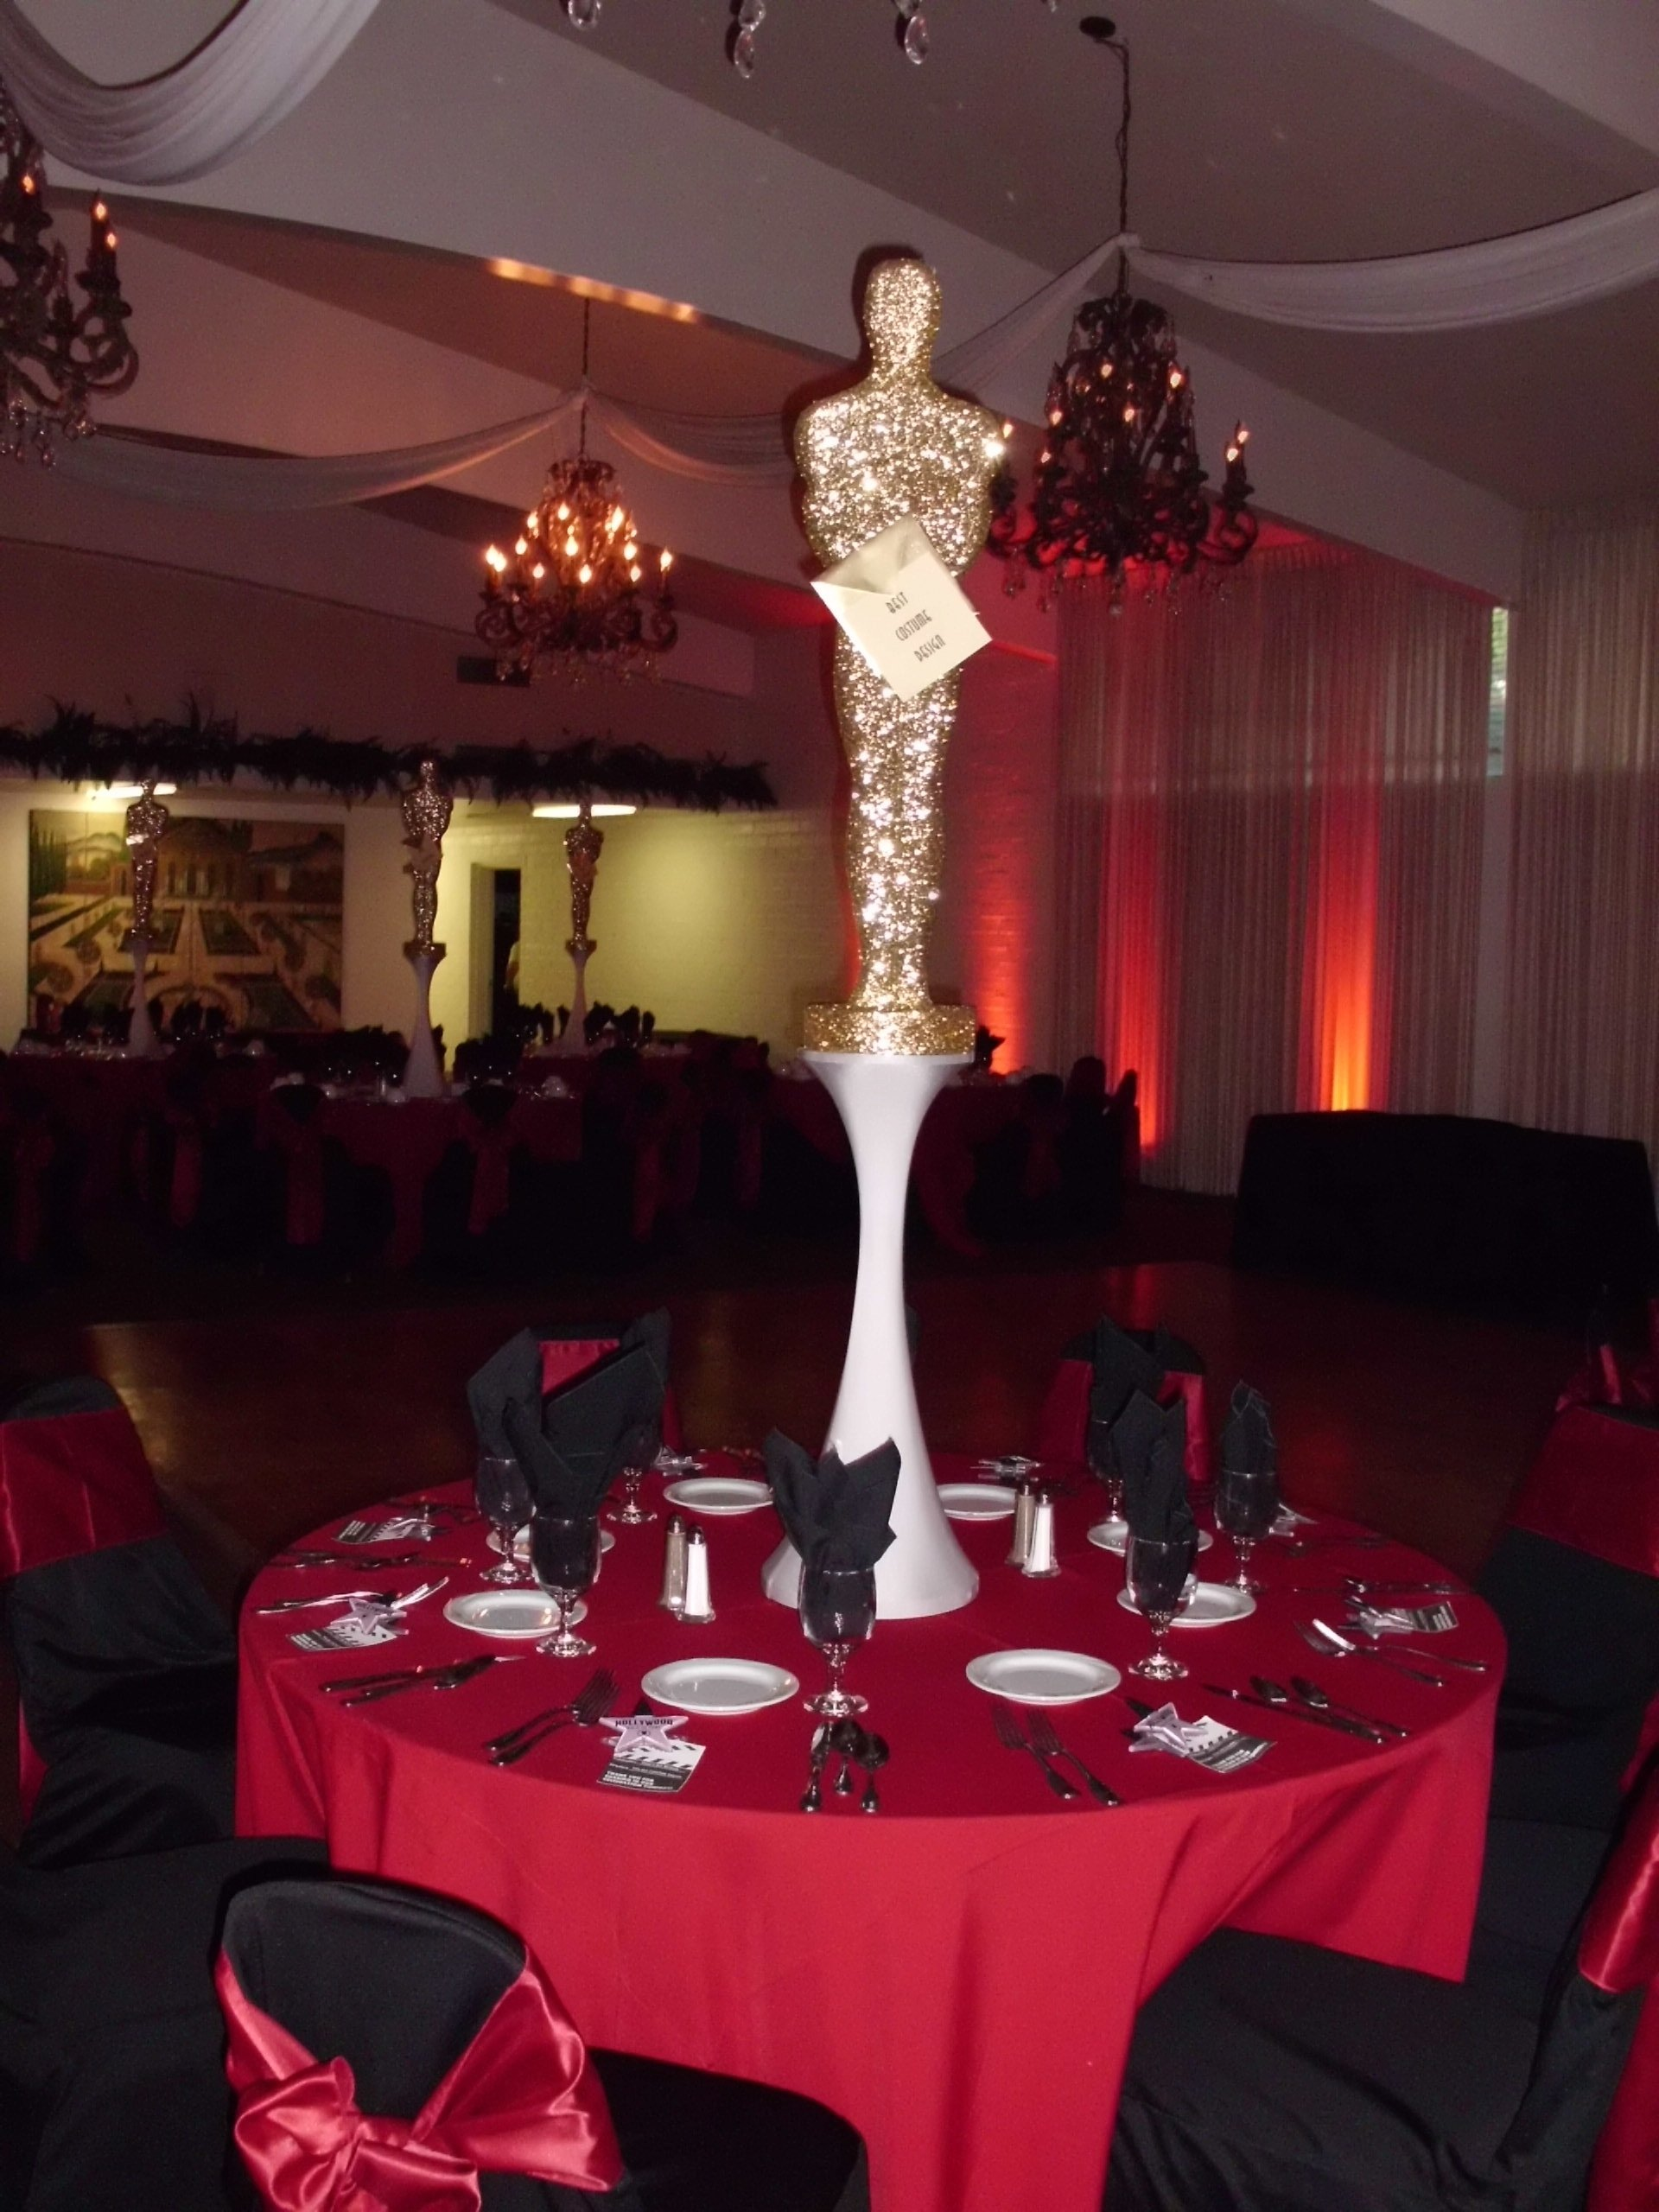 10 Famous Red Carpet Theme Party Ideas interior design red carpet party theme decorations beautiful black 2021